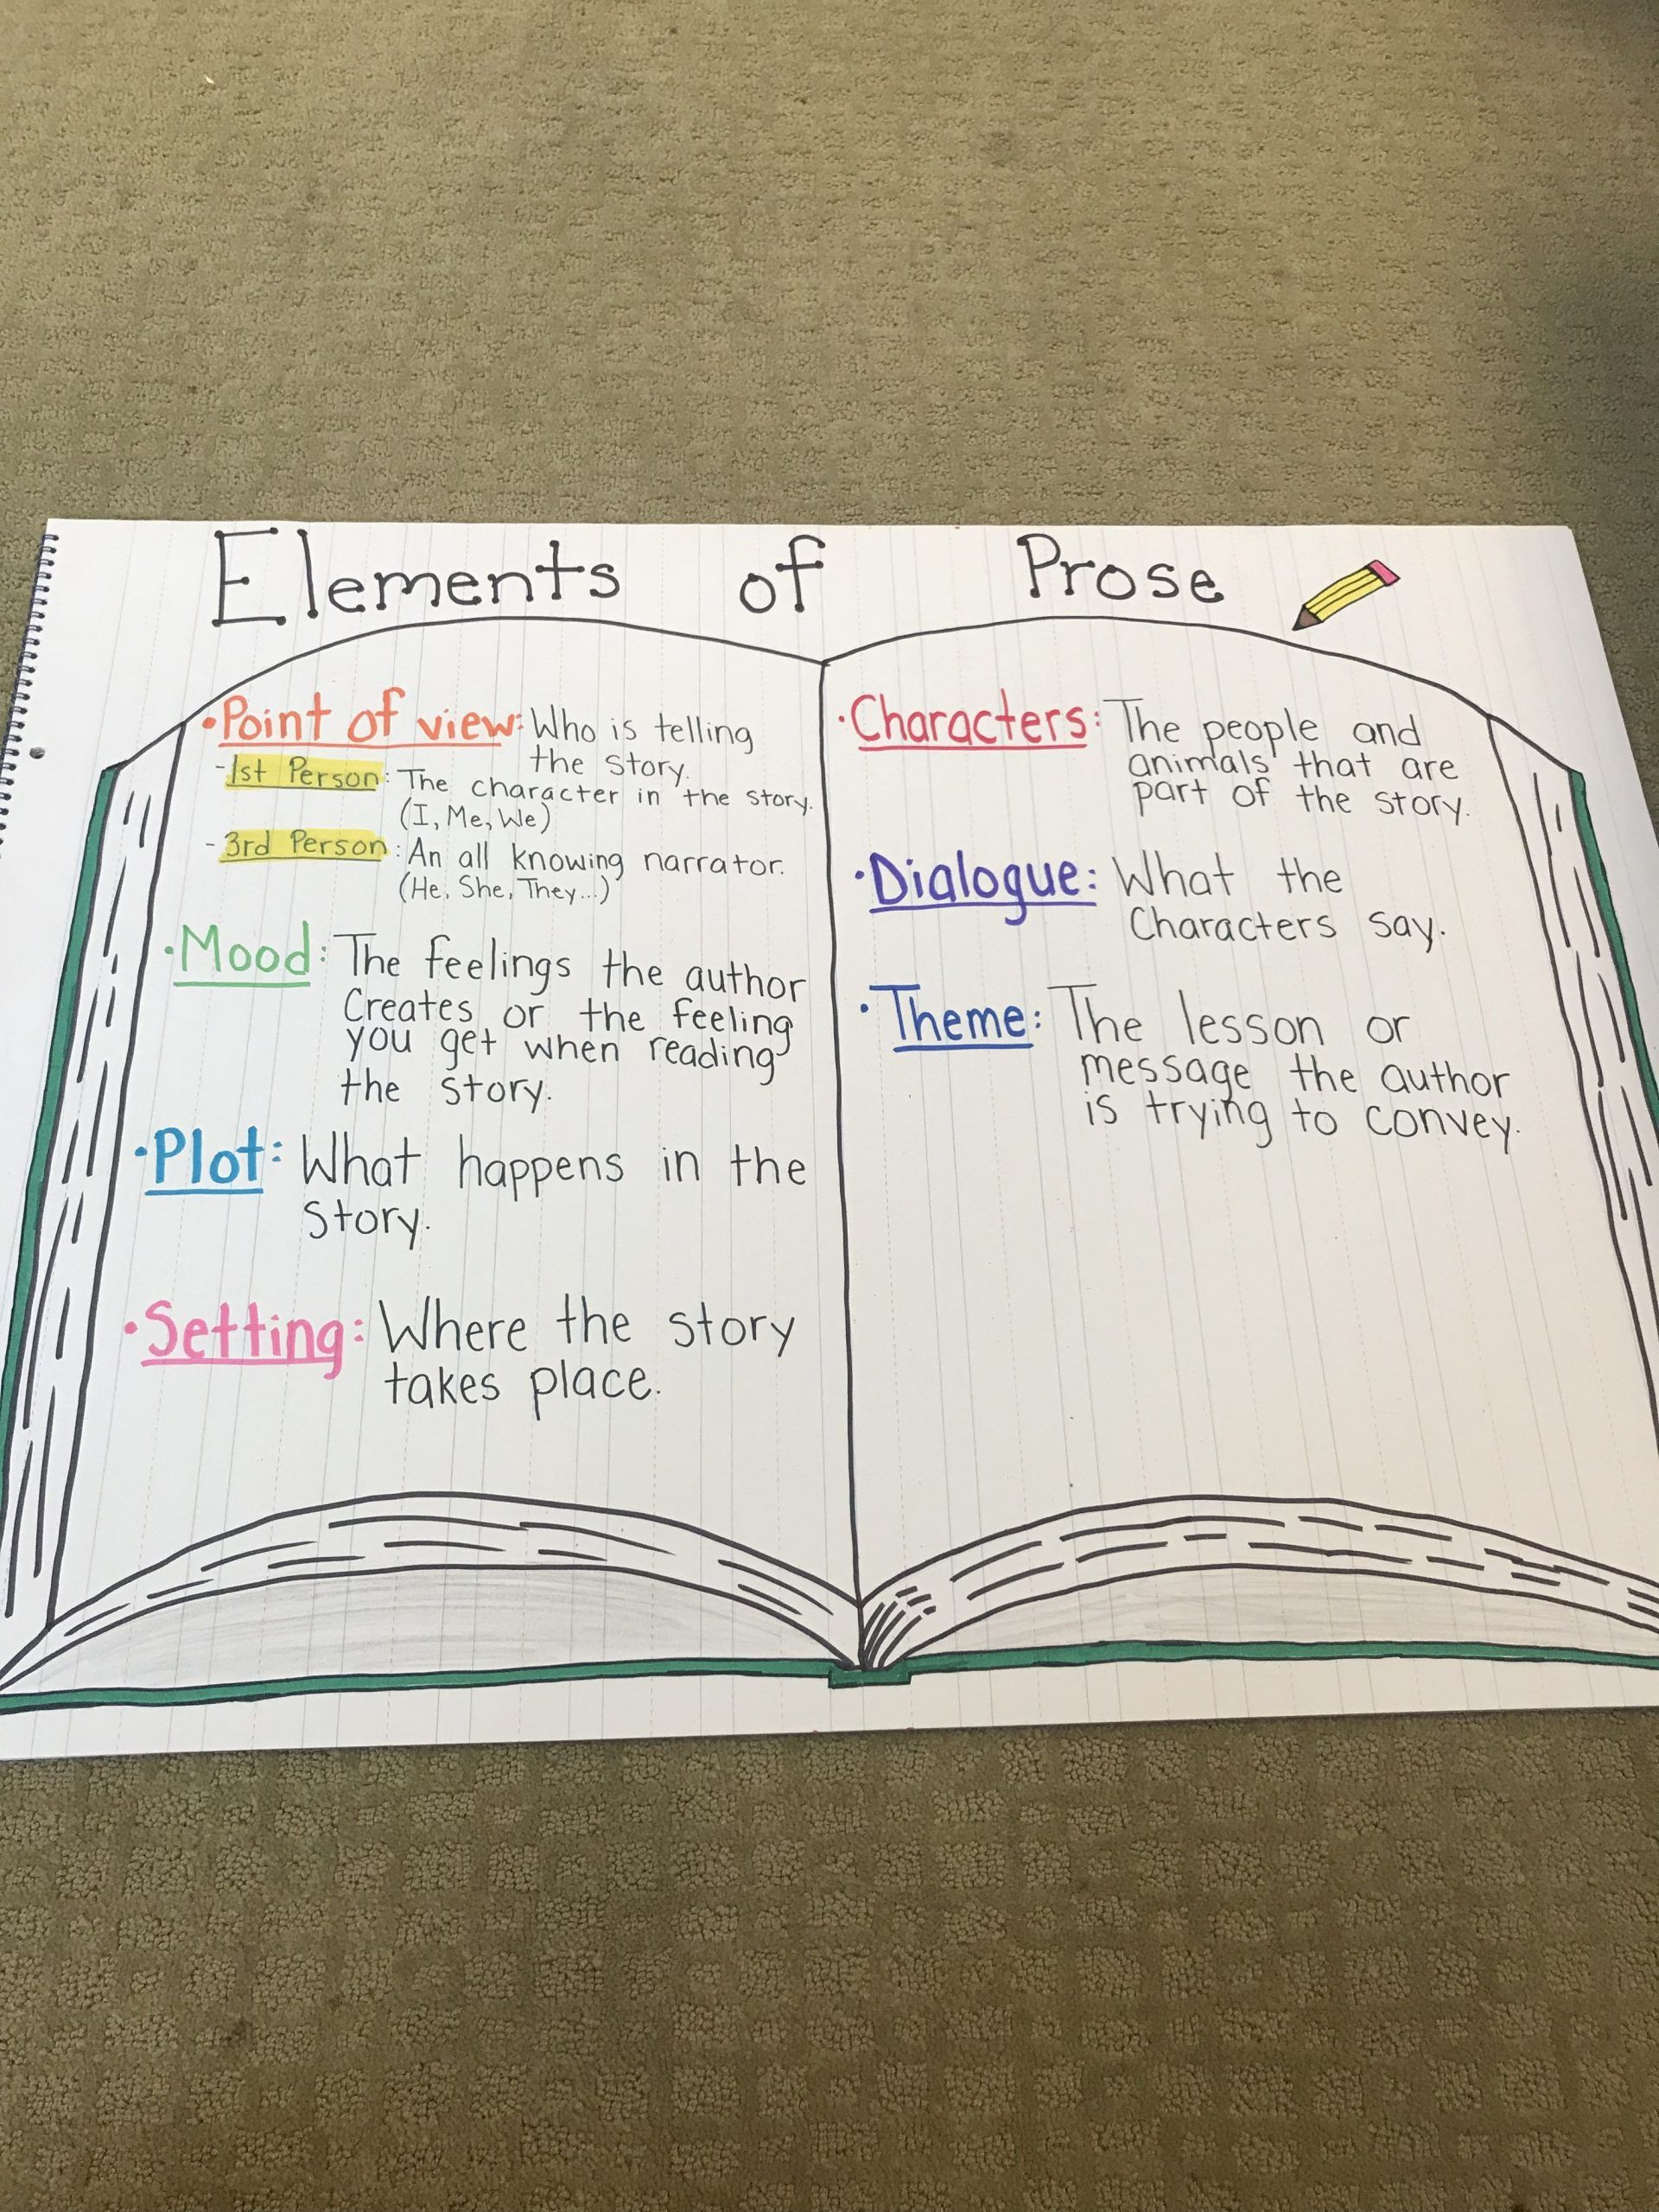 "hight resolution of Story Elements Worksheet 4th Grade Elements Of Prose"" Anchor Chart 4th Grade    Anchor charts"